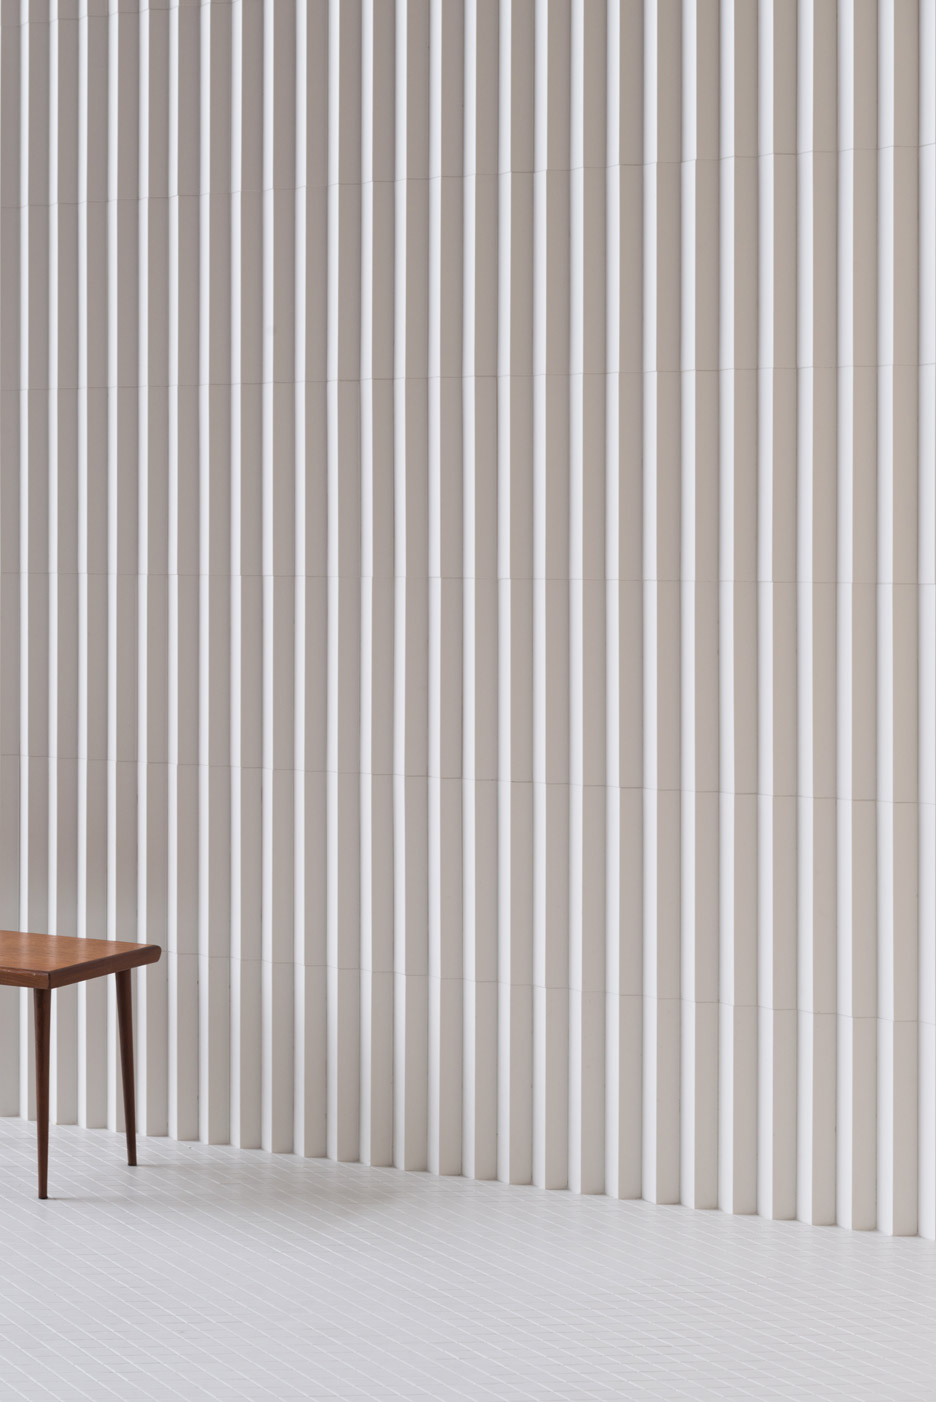 Bouroullec-brothers_Rombini-tile-collection_Mutina_dezeen_936_01